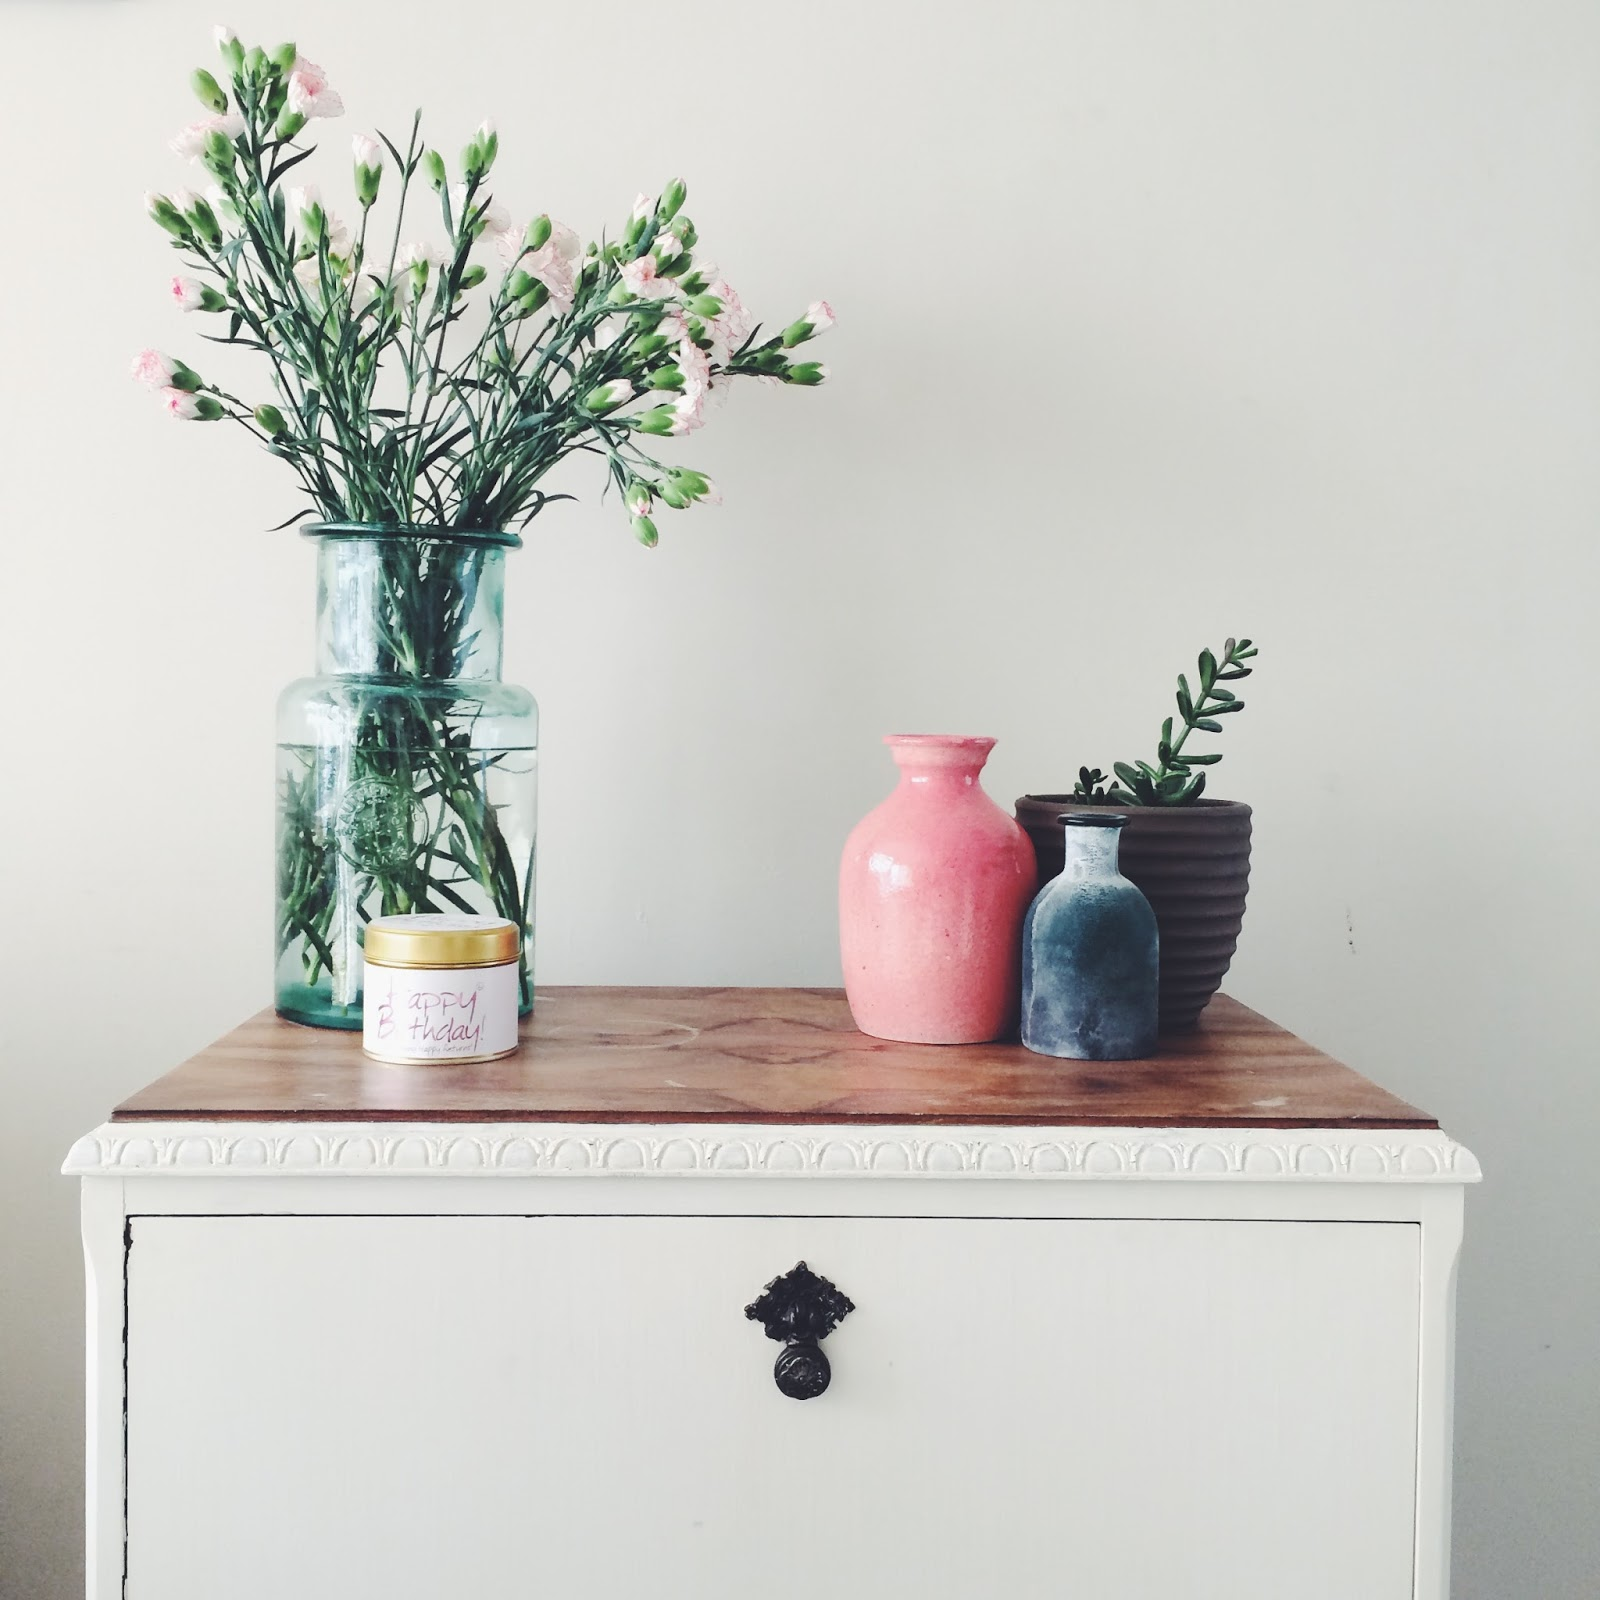 Dalry Rose blog, vintage home decor, what makes a house a home